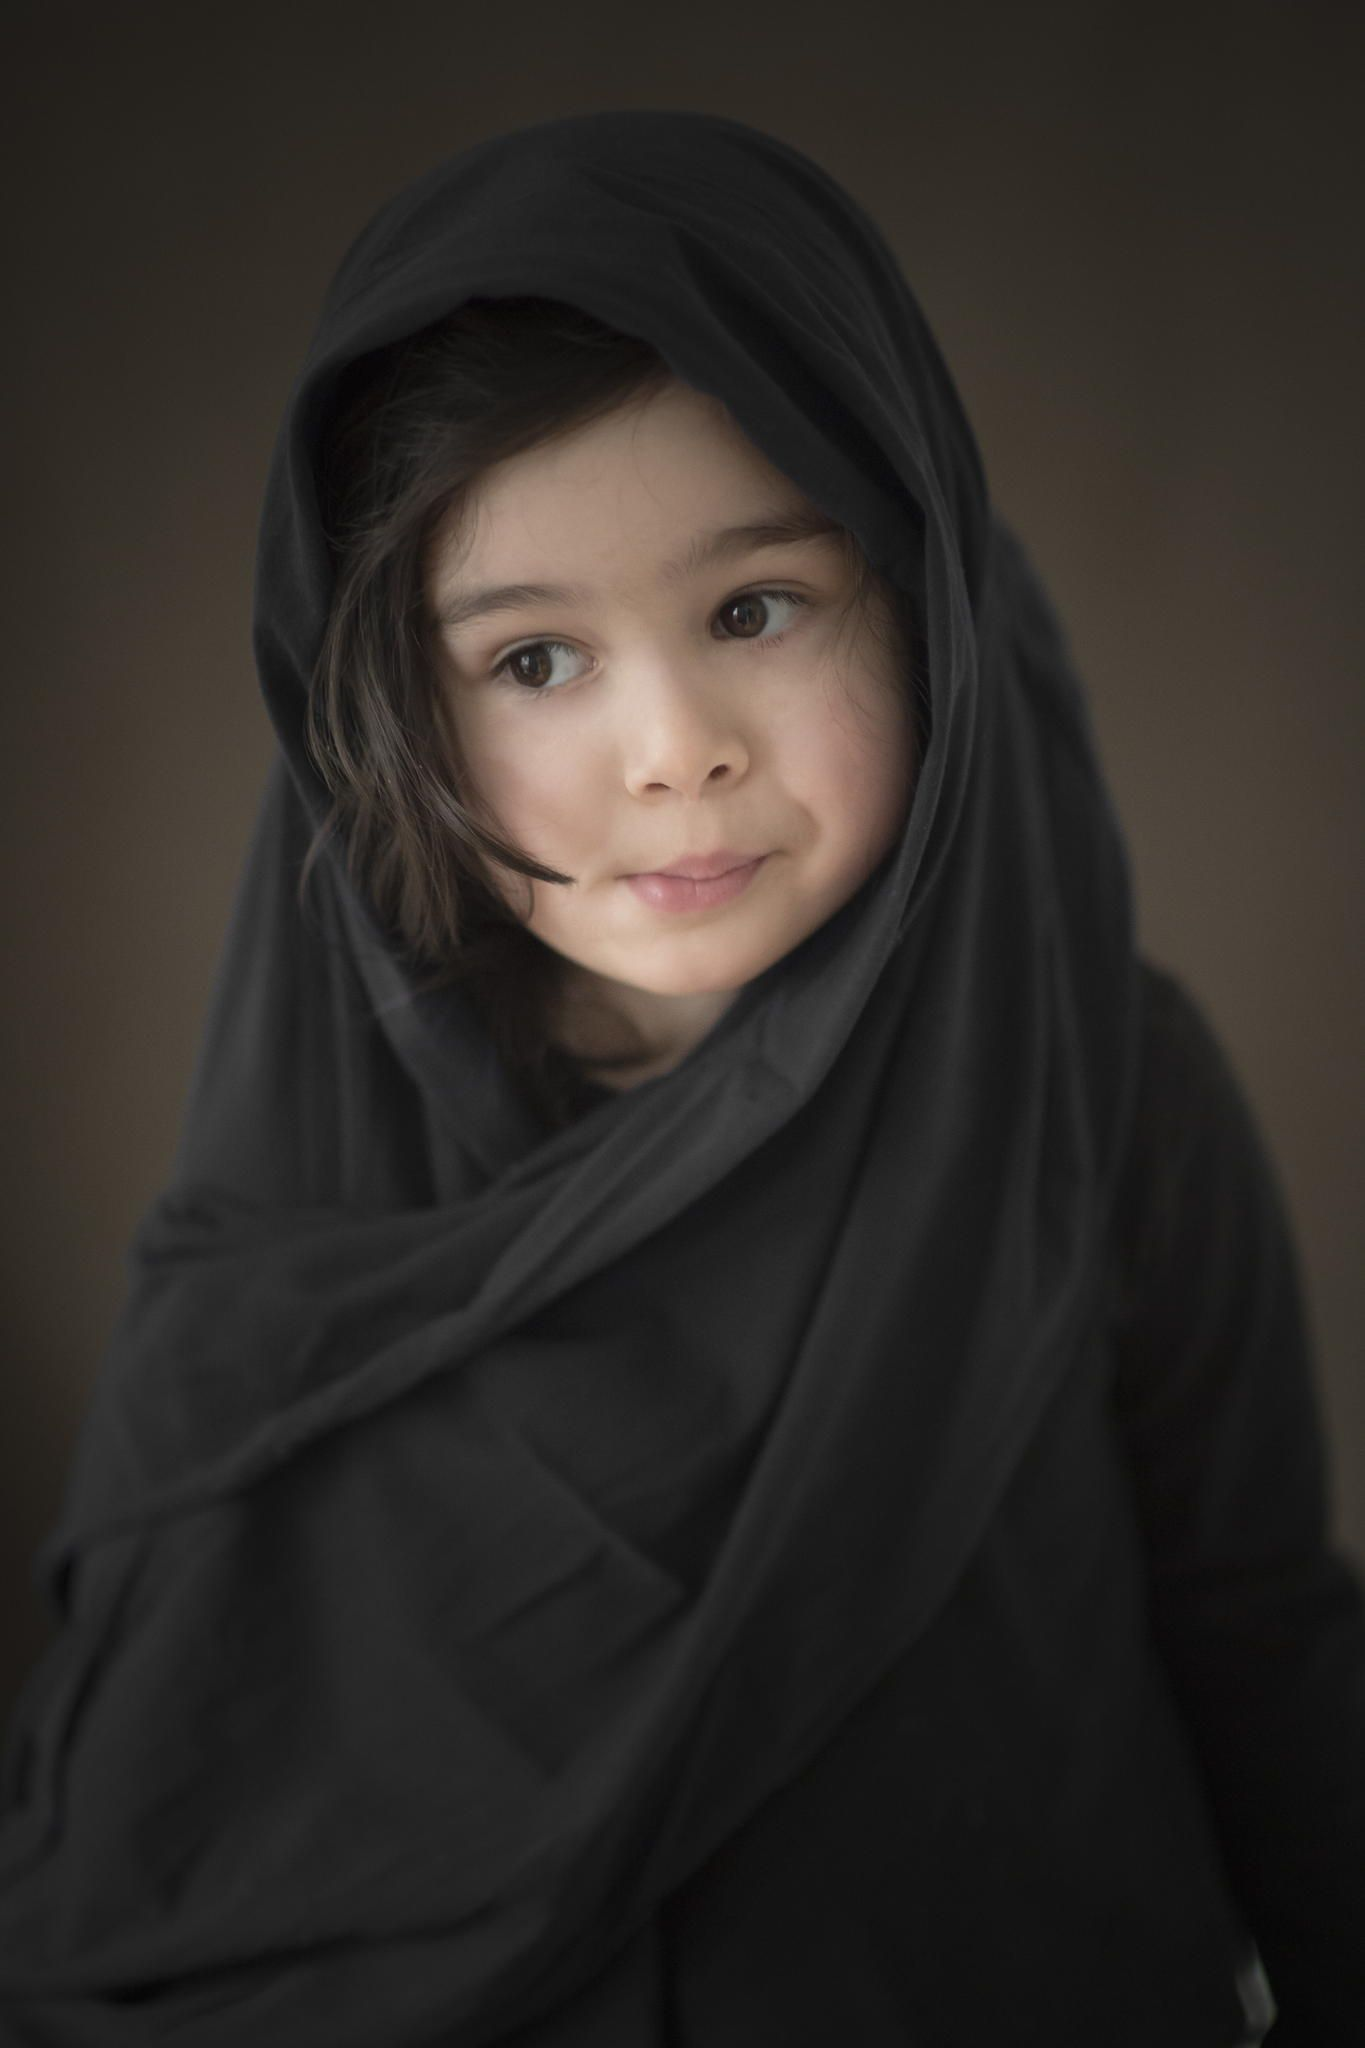 Xxx afghan young girl pity, that